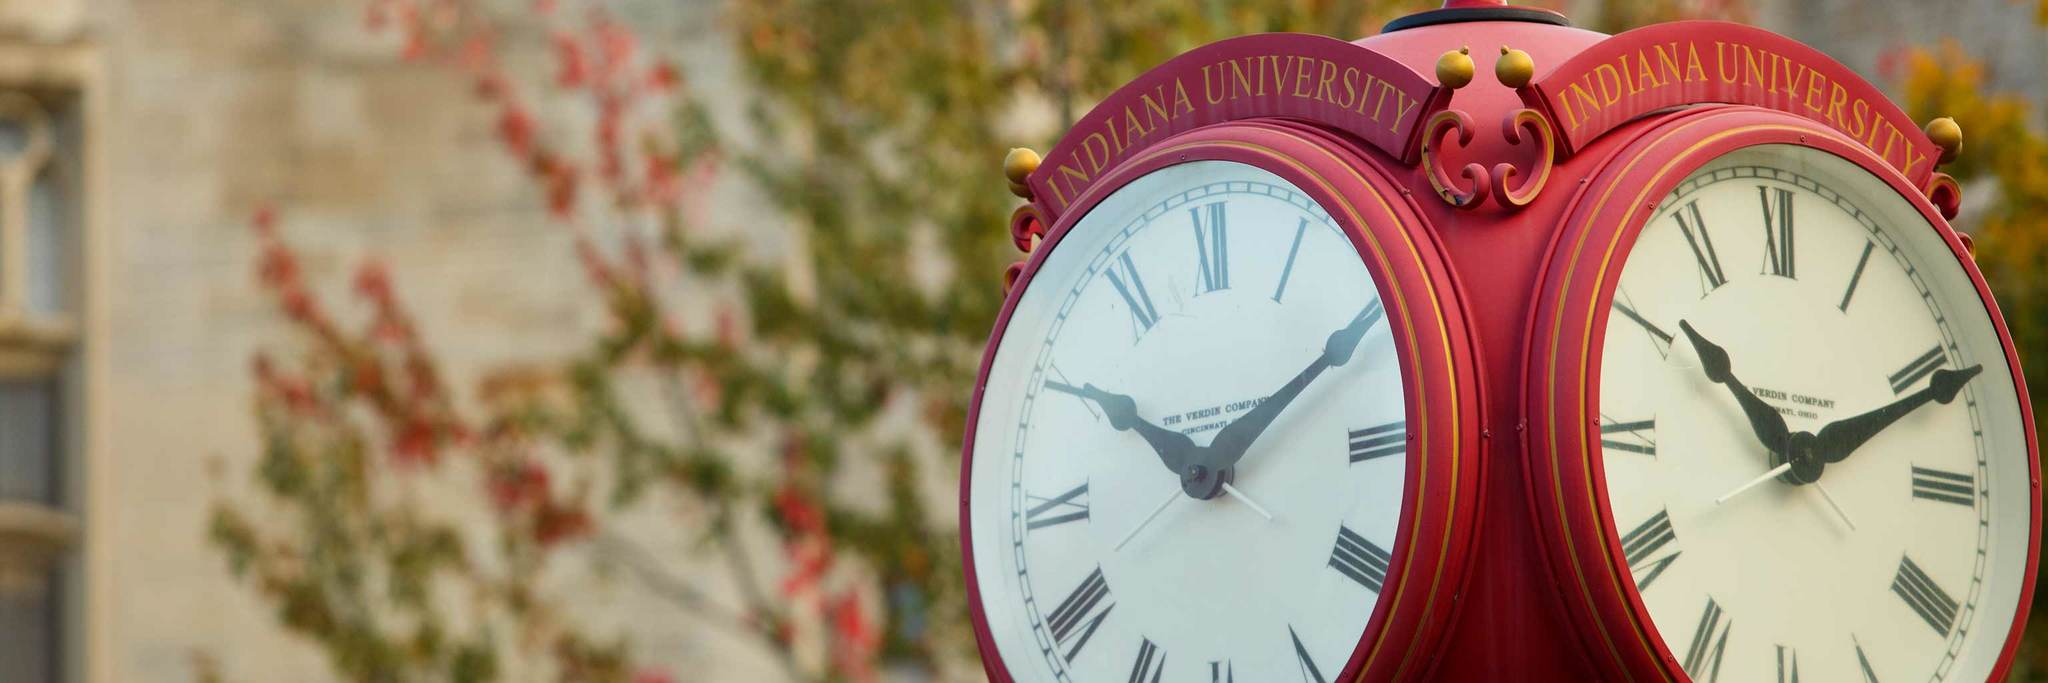 "A close-up of a red Indiana University clock illustrates the ""always + forward"" mission of ISCA."